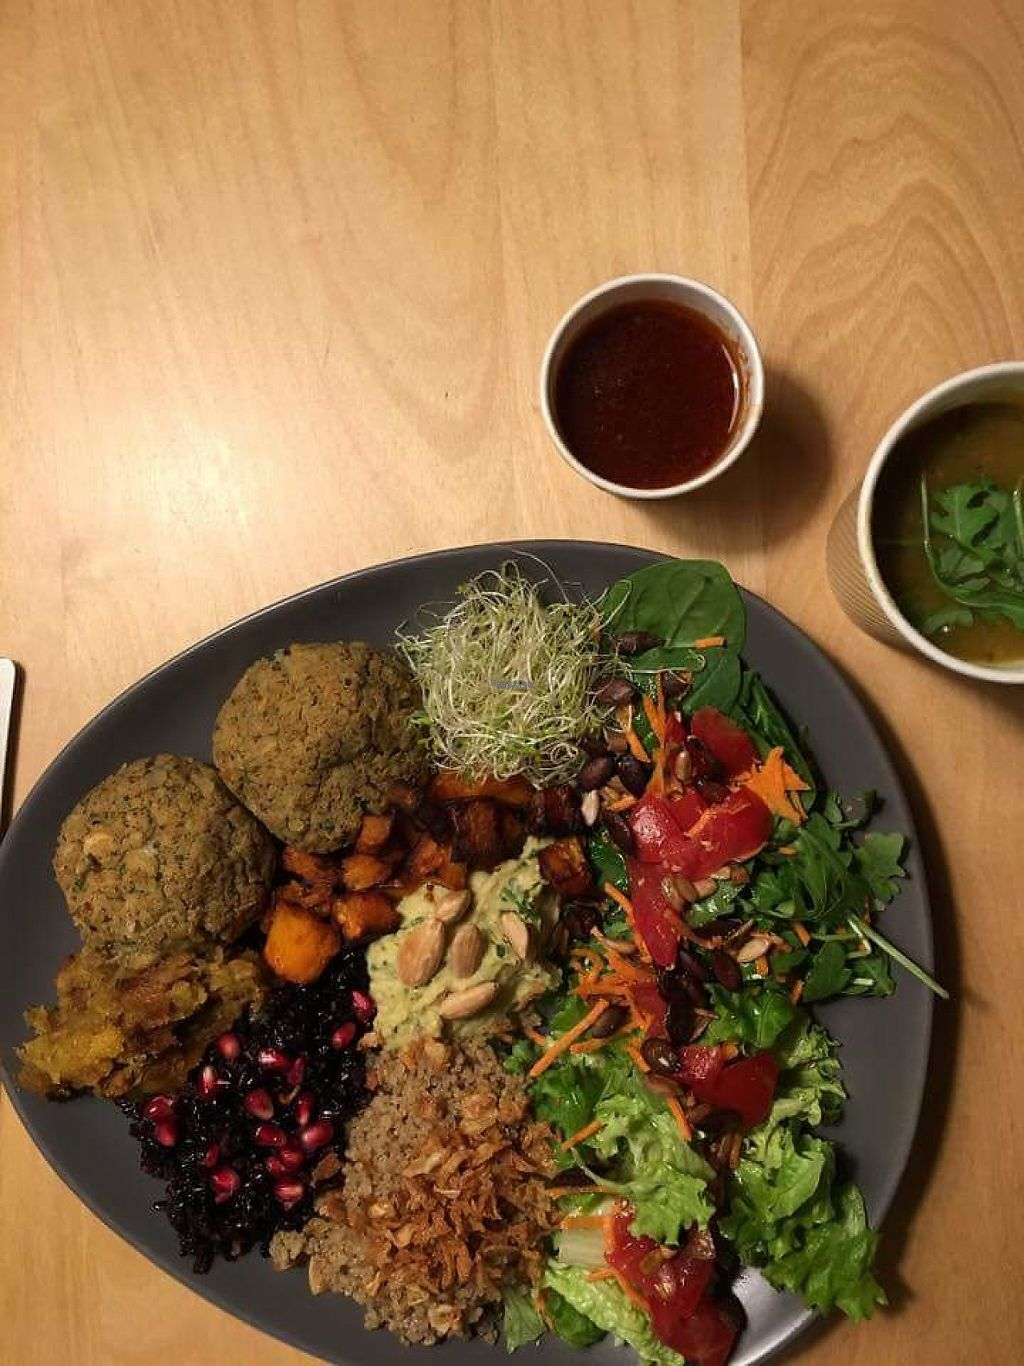 """Photo of Le Jardin de Teli  by <a href=""""/members/profile/lejardindeteli"""">lejardindeteli</a> <br/>Vegan plate of the day <br/> November 16, 2016  - <a href='/contact/abuse/image/82715/190840'>Report</a>"""